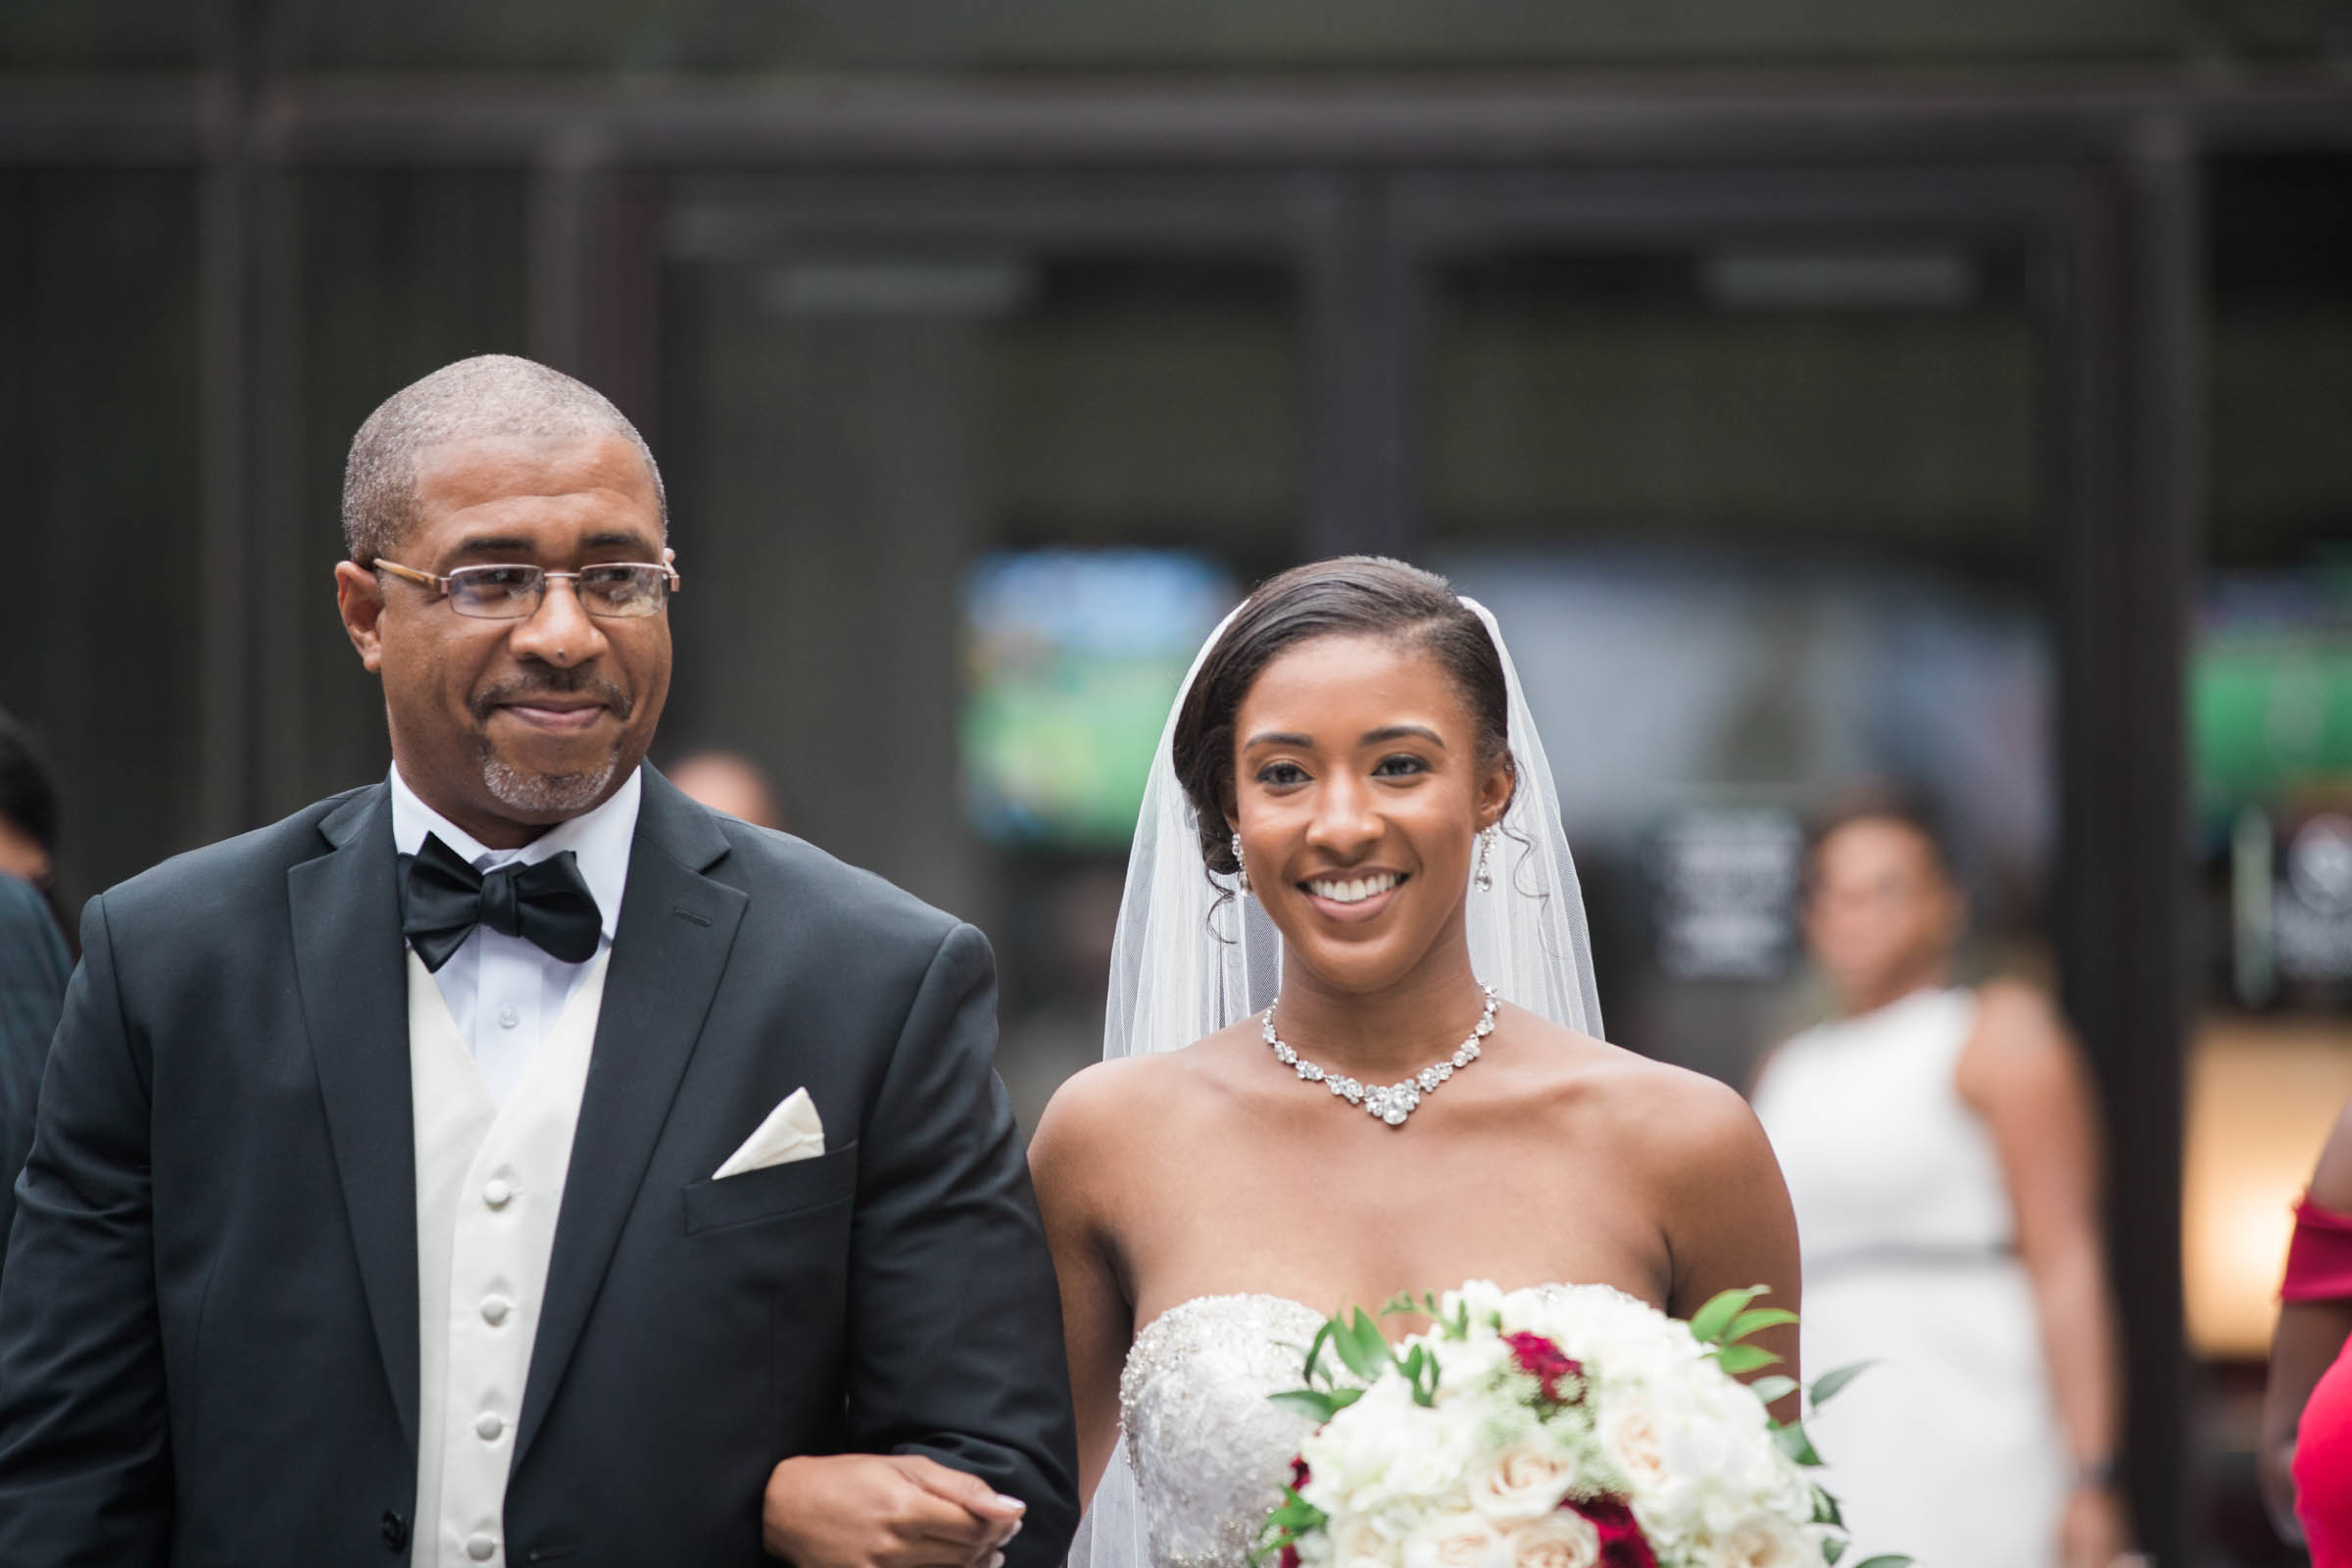 Black Bride Dream Wedding at  Hyatt Regency Fairfax Virginia Husband and Wife Wedding Photographers Megapixels Media Photography (47 of 104).jpg